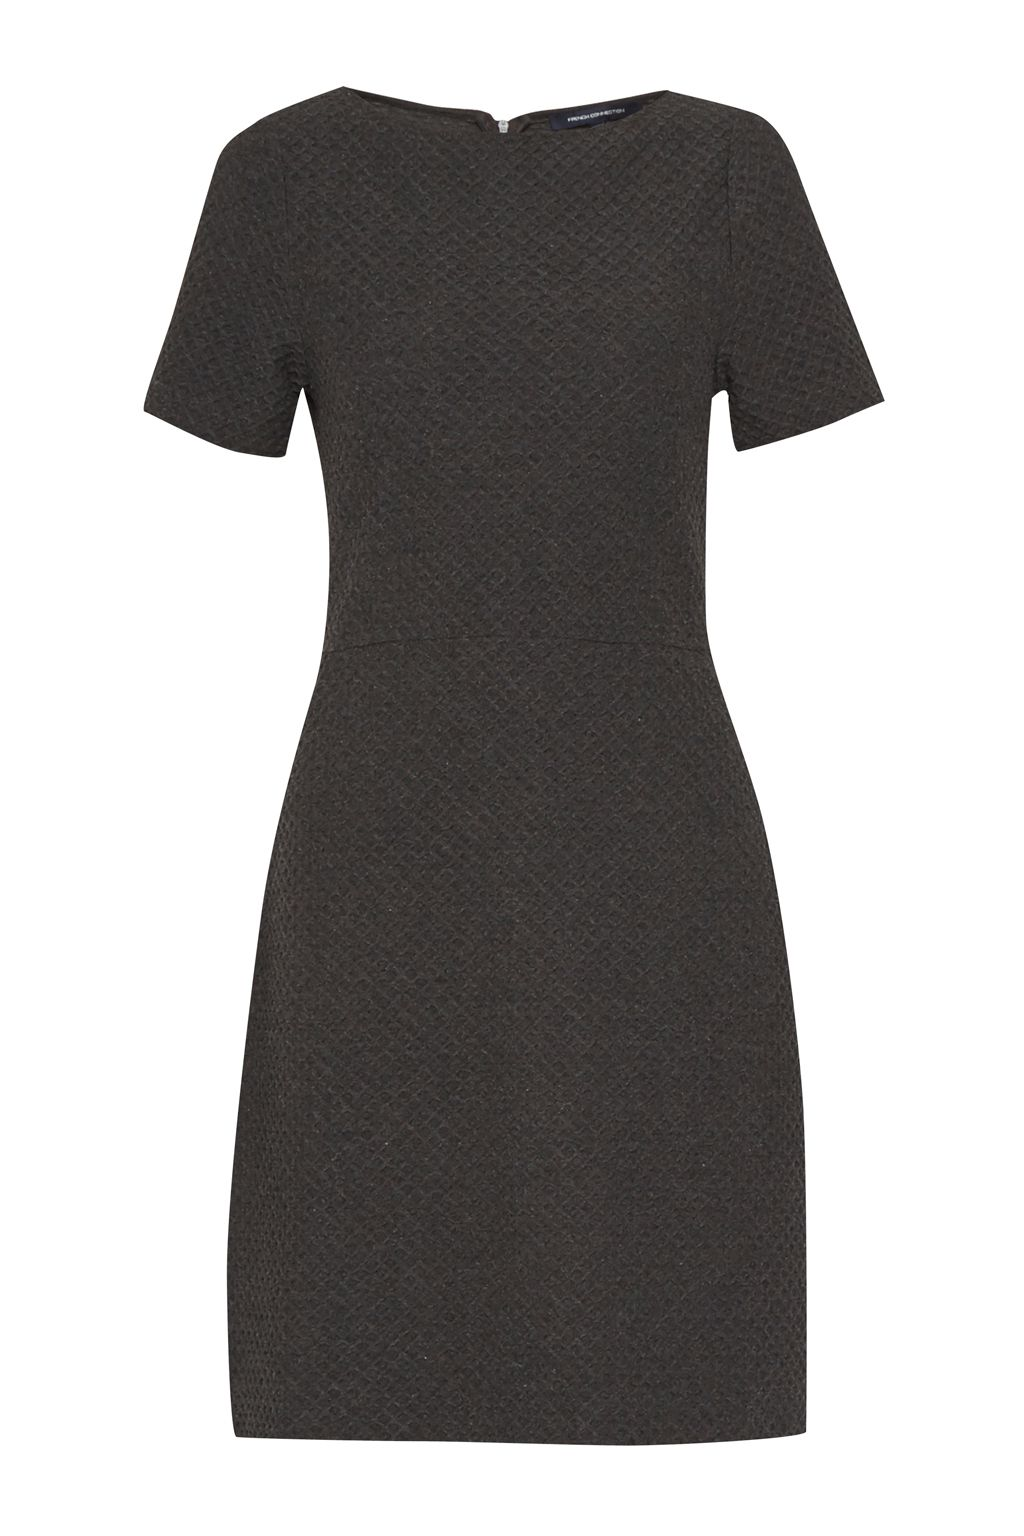 Dixie Textured Dress by French Connection